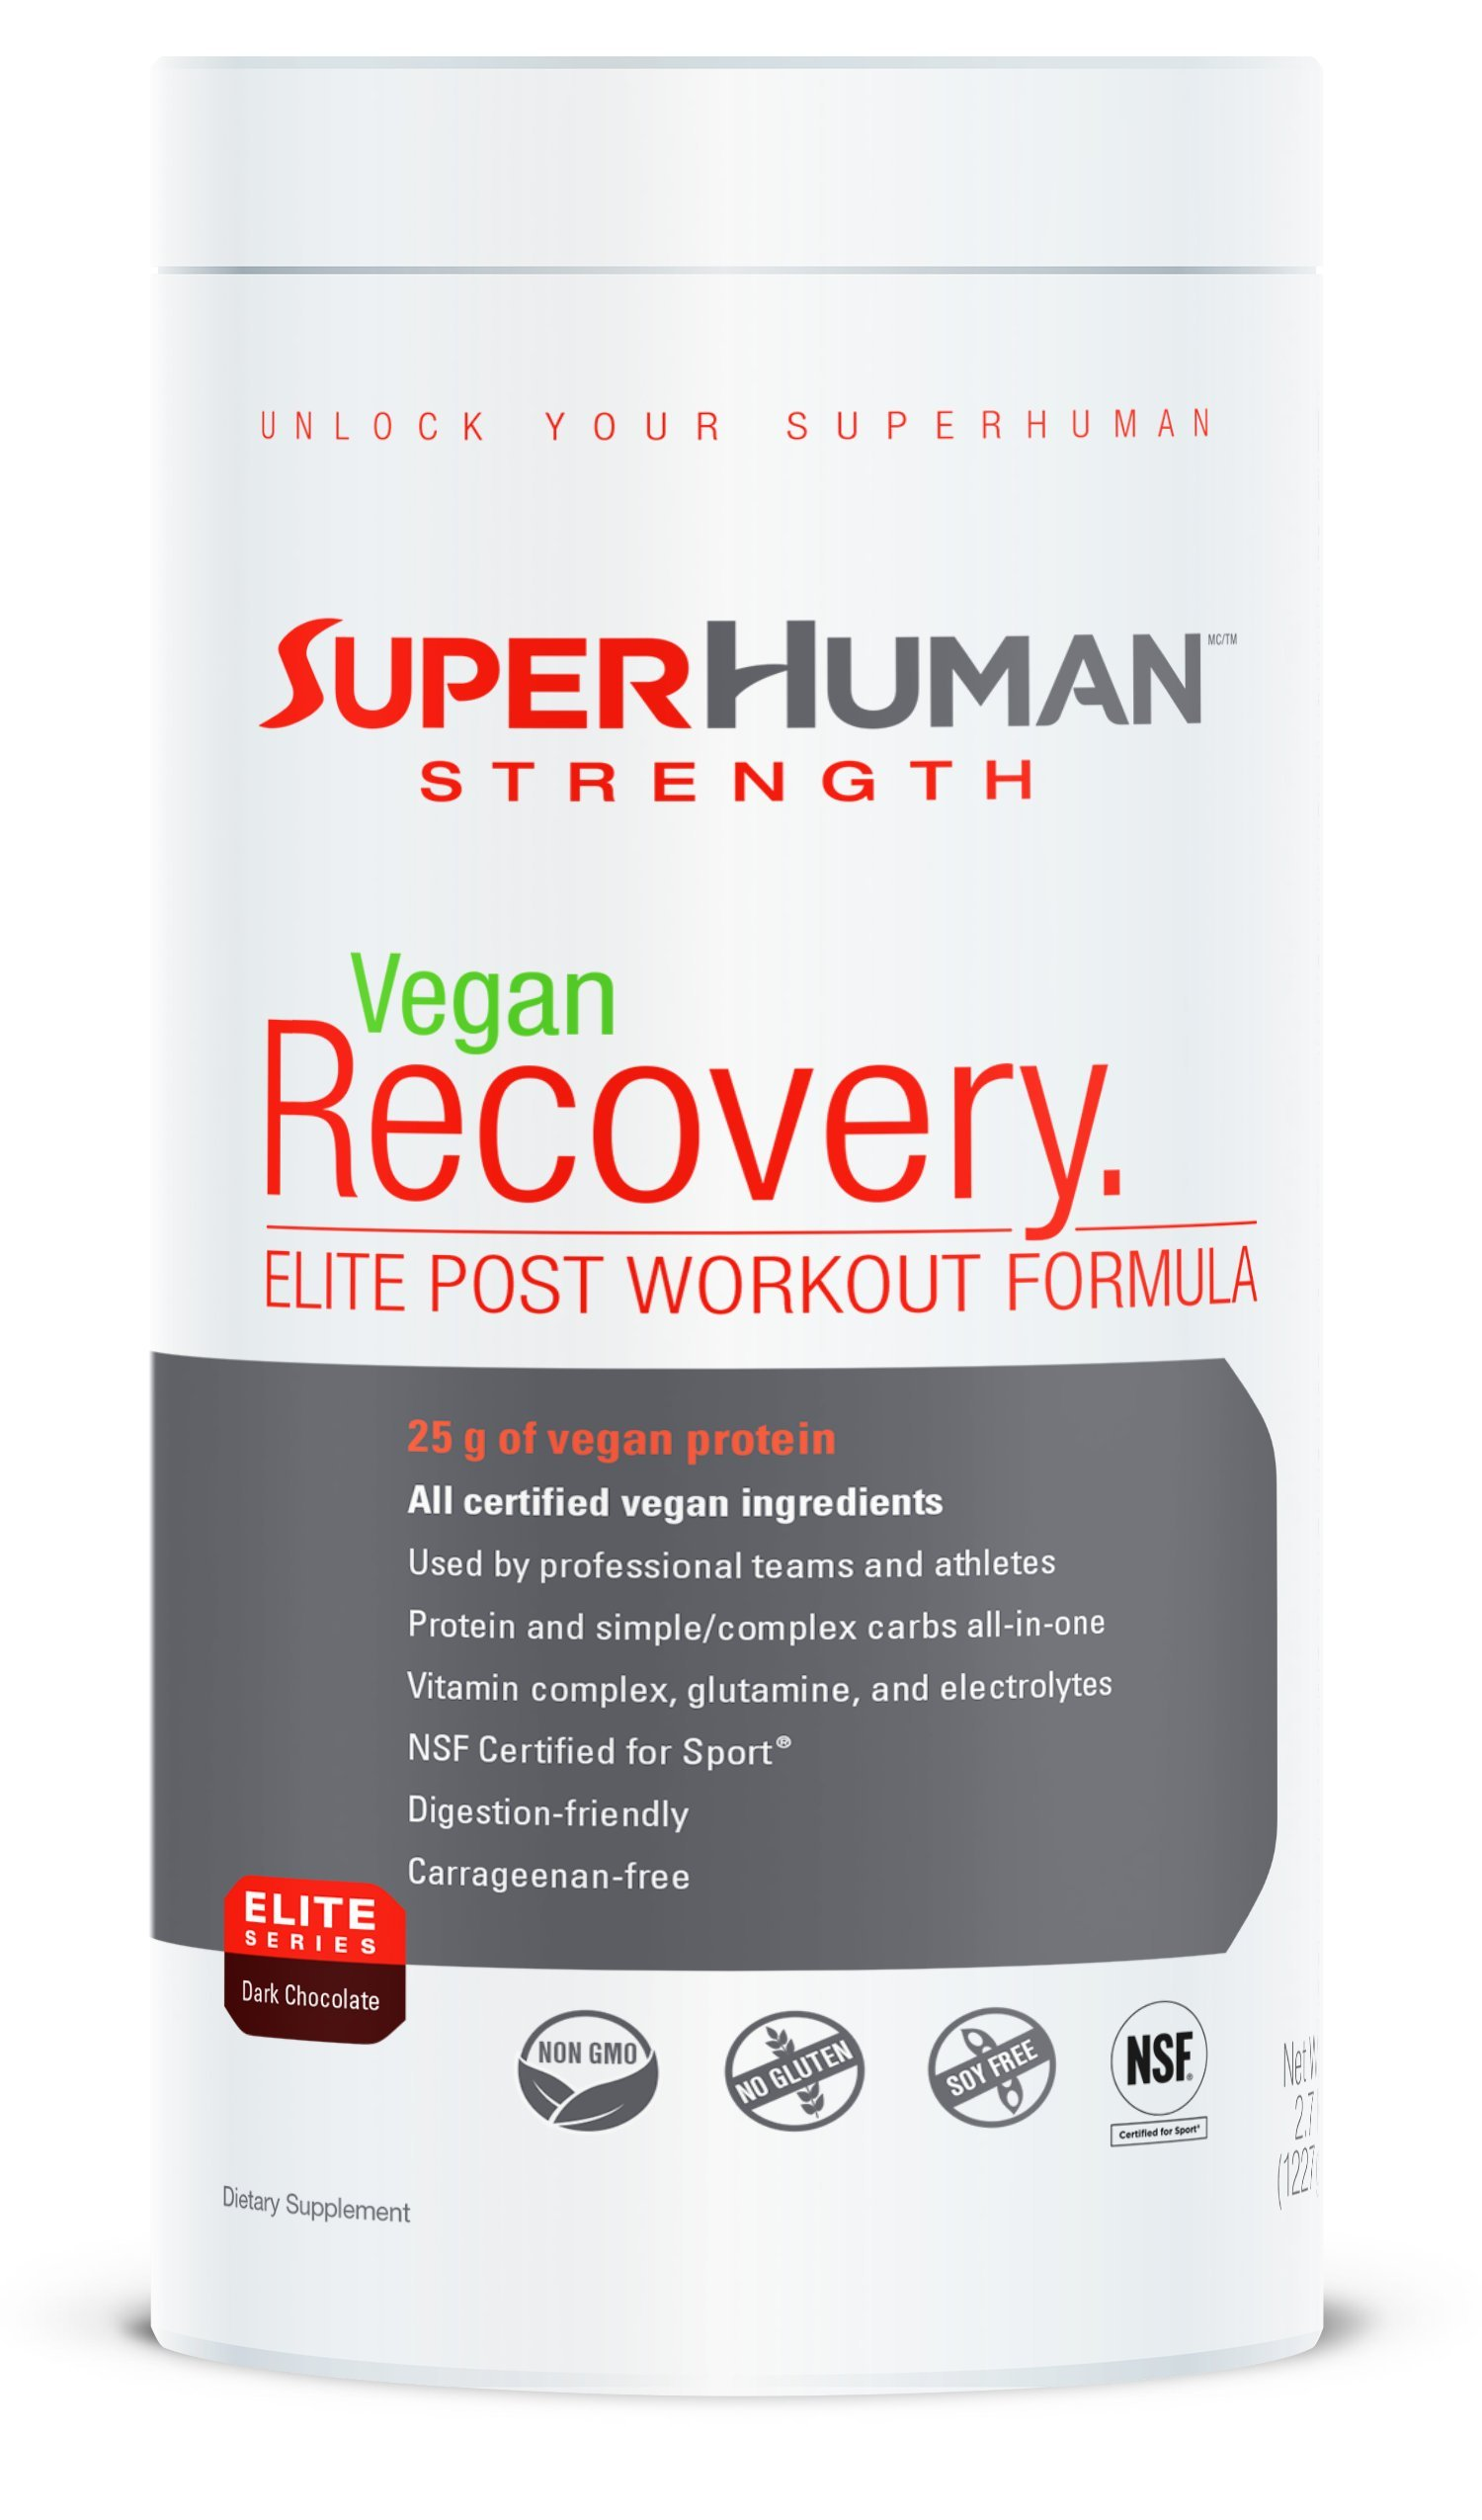 Superhuman Vegan Recovery Protein - Vegan Protein, Carbohydrate & Vitamin Blend (1227g)